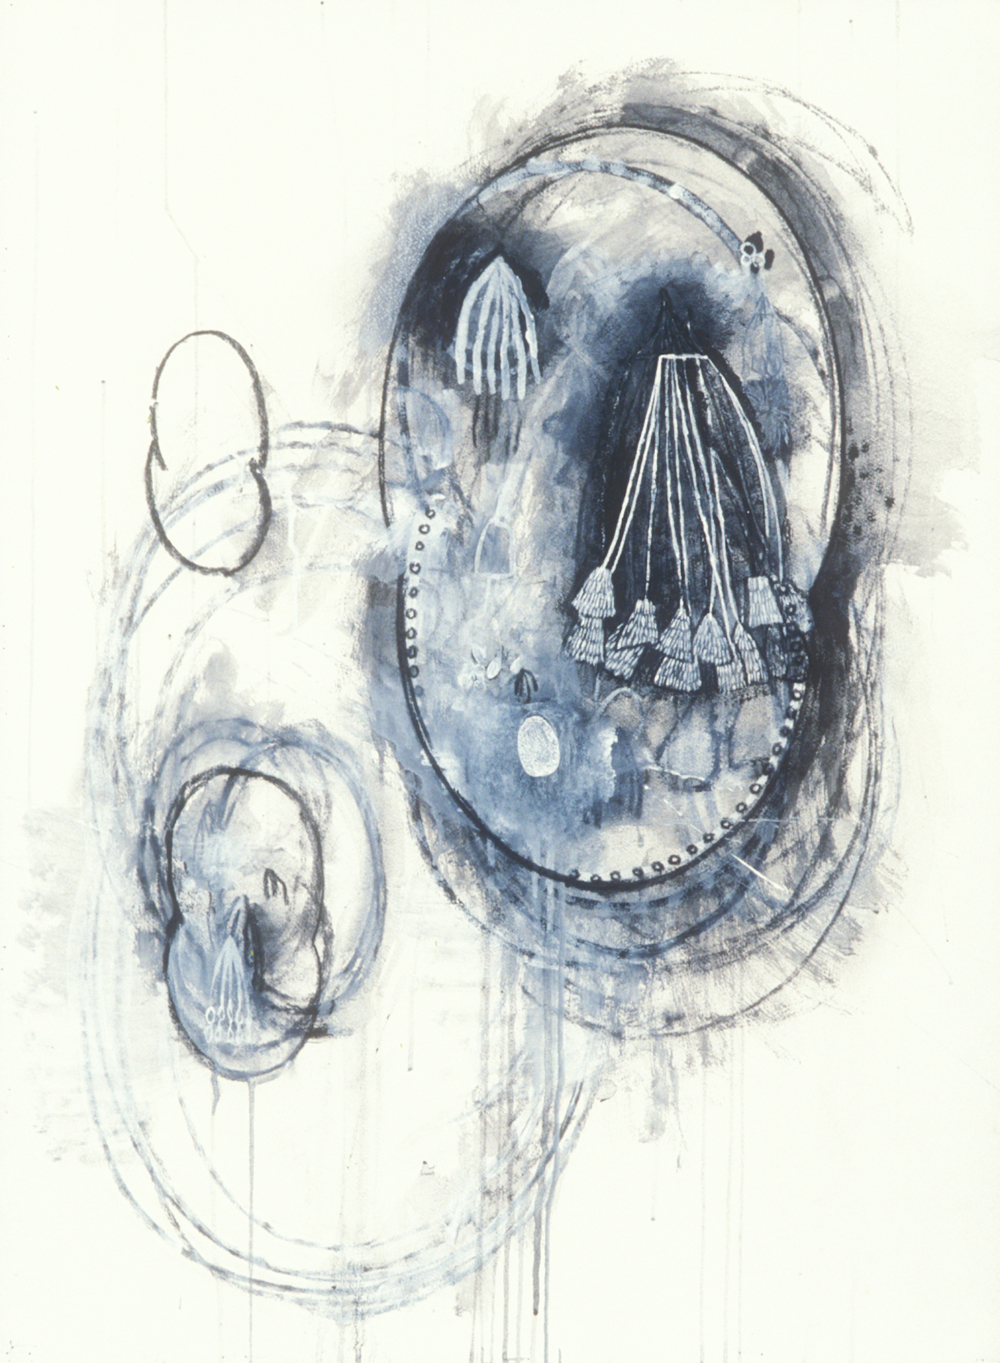 Elemental 11  , 1989, mixed media on paper, 29.5 x 21.5 in.